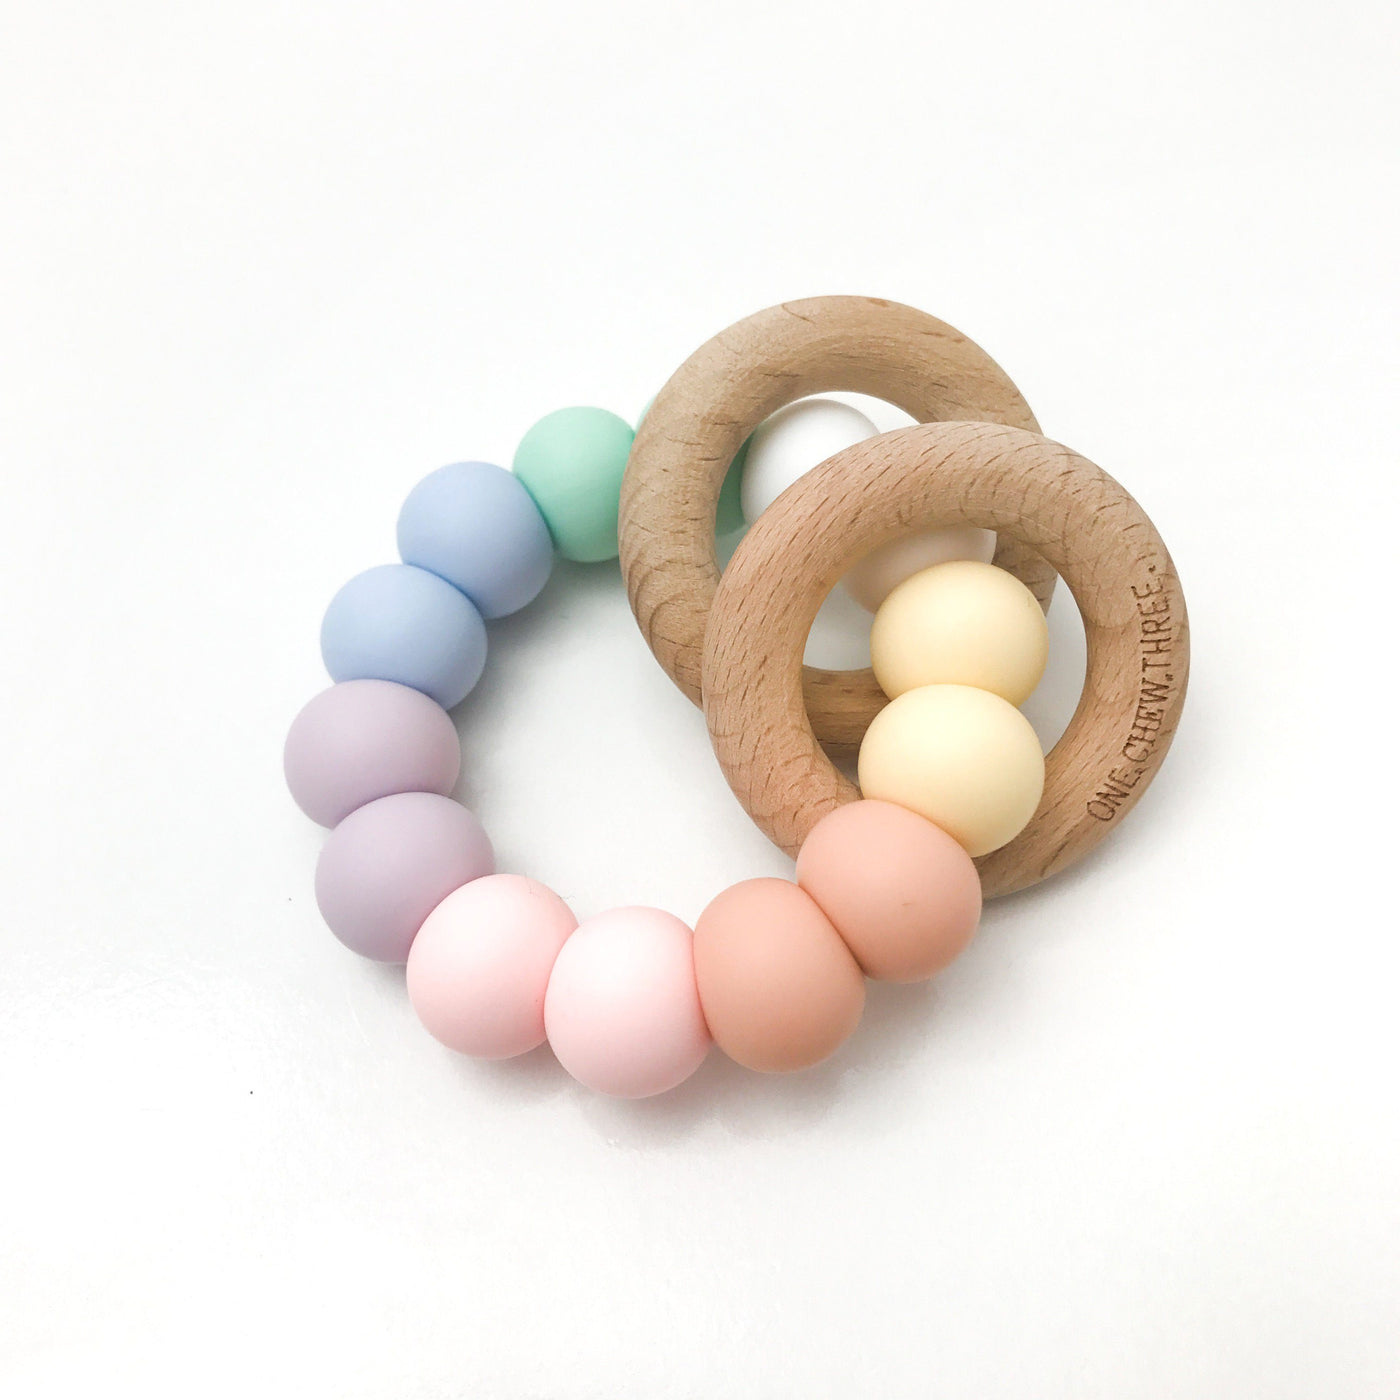 RATTLE Silicone and Wood Teether